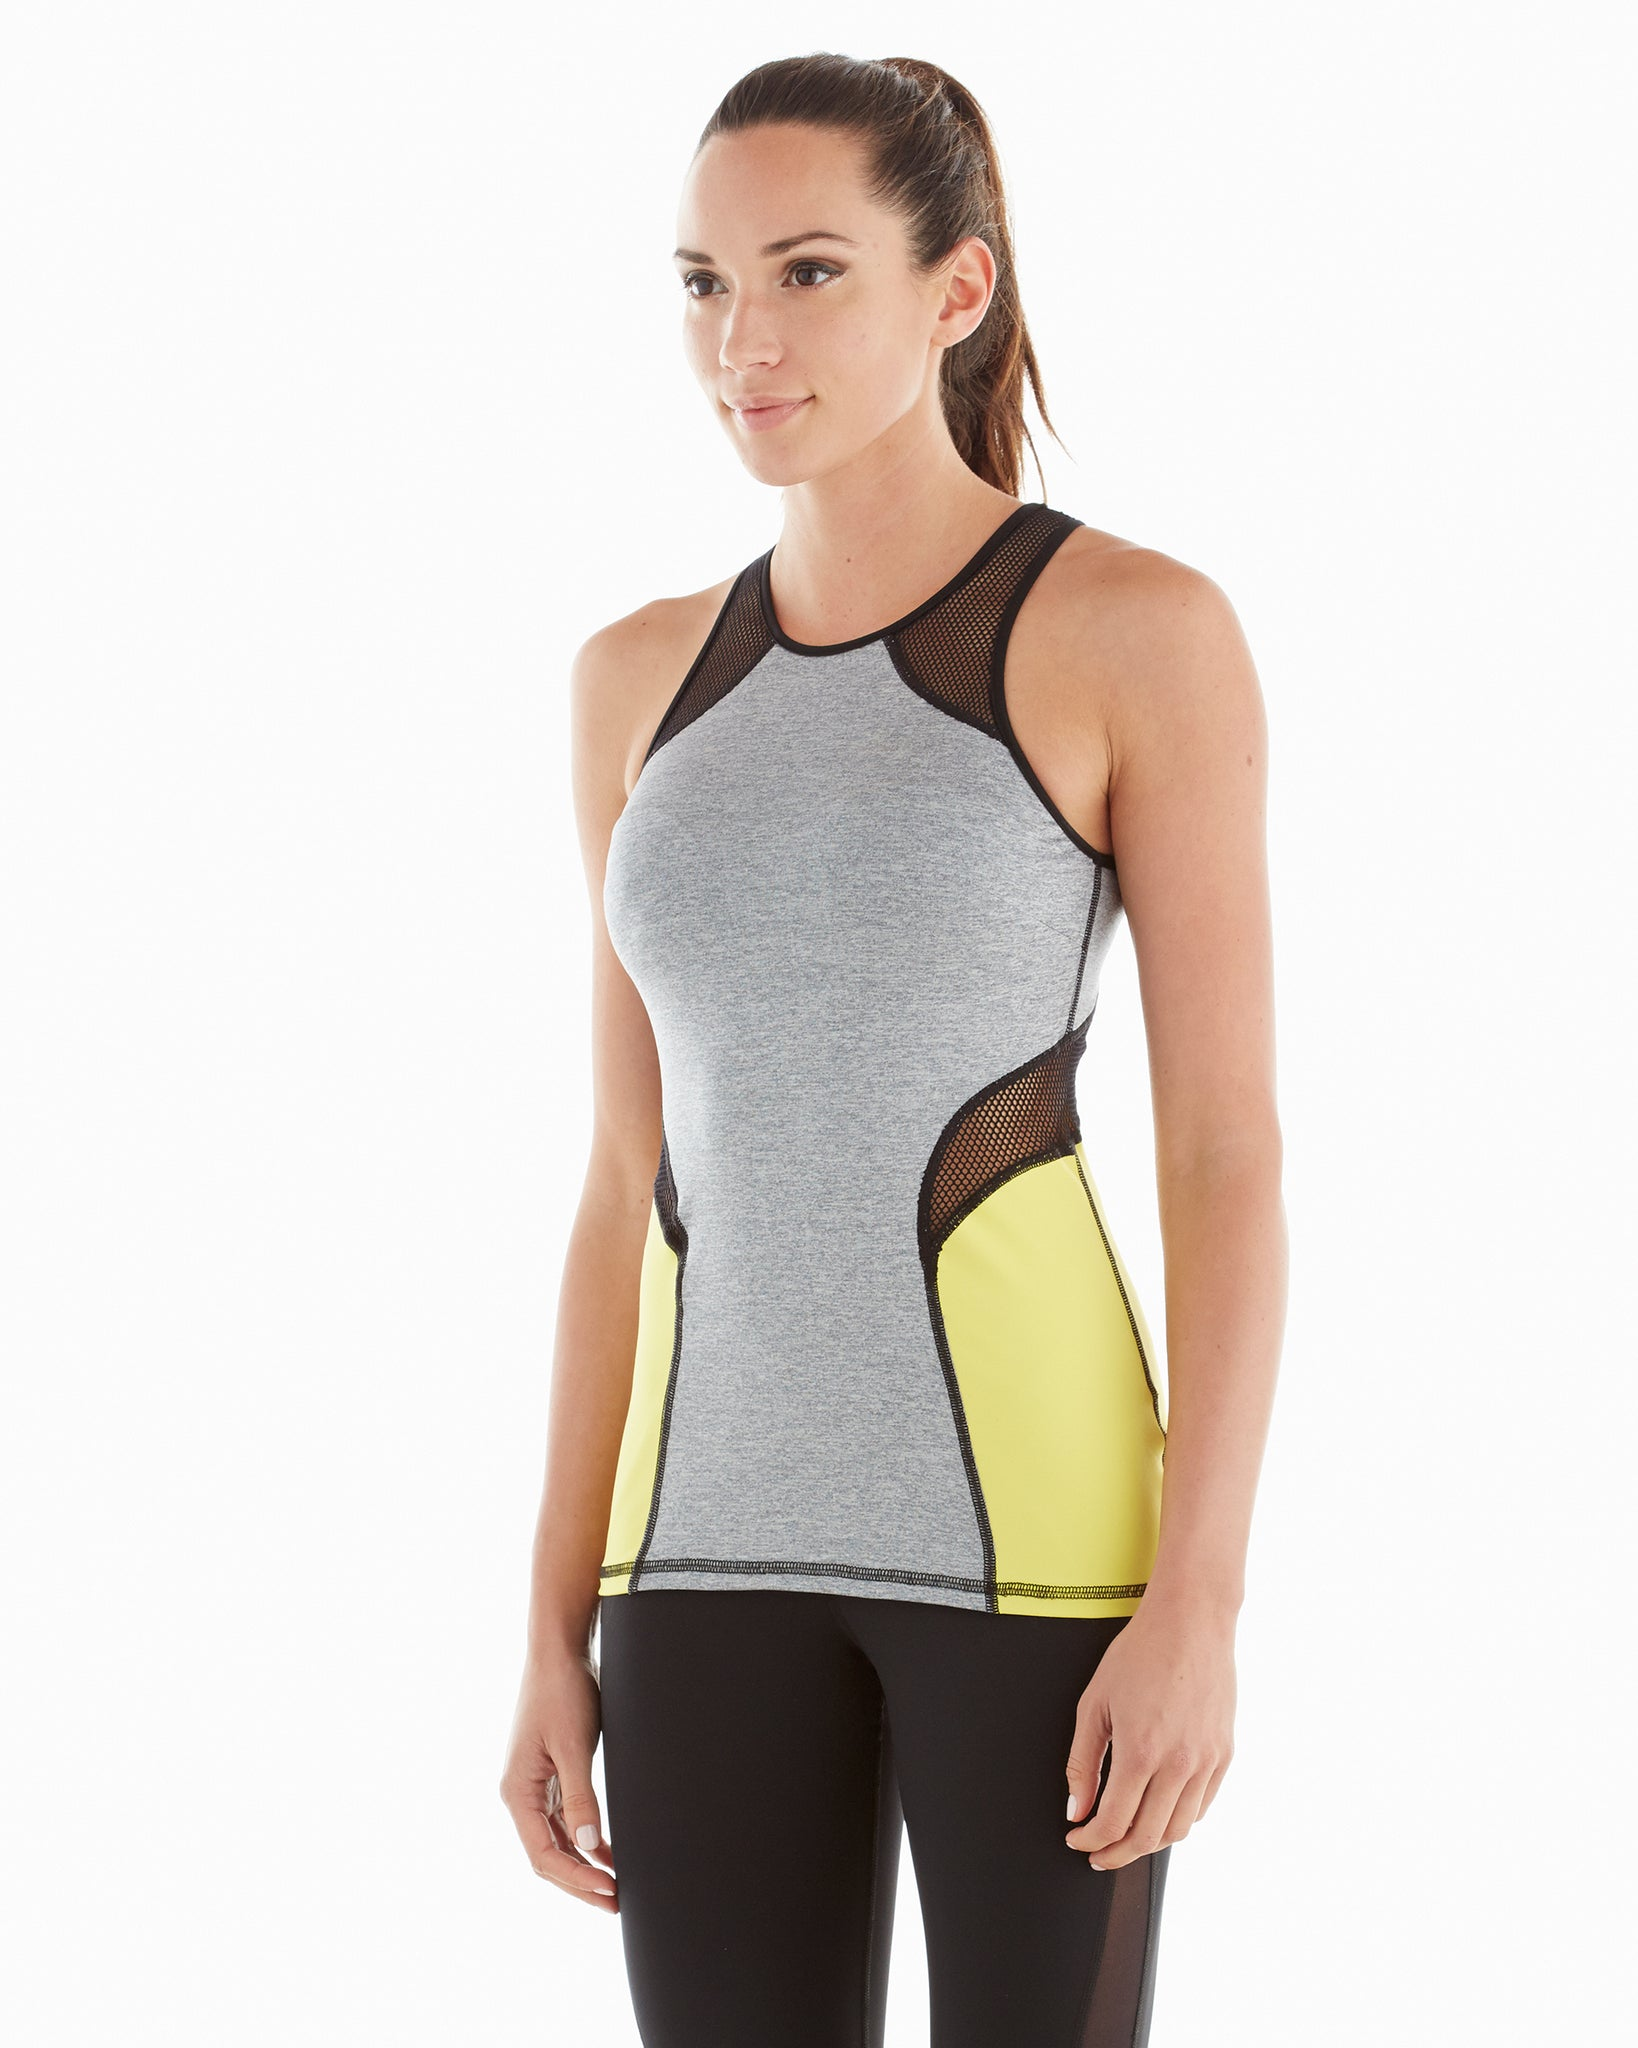 Chameleon Tank - Heather Grey